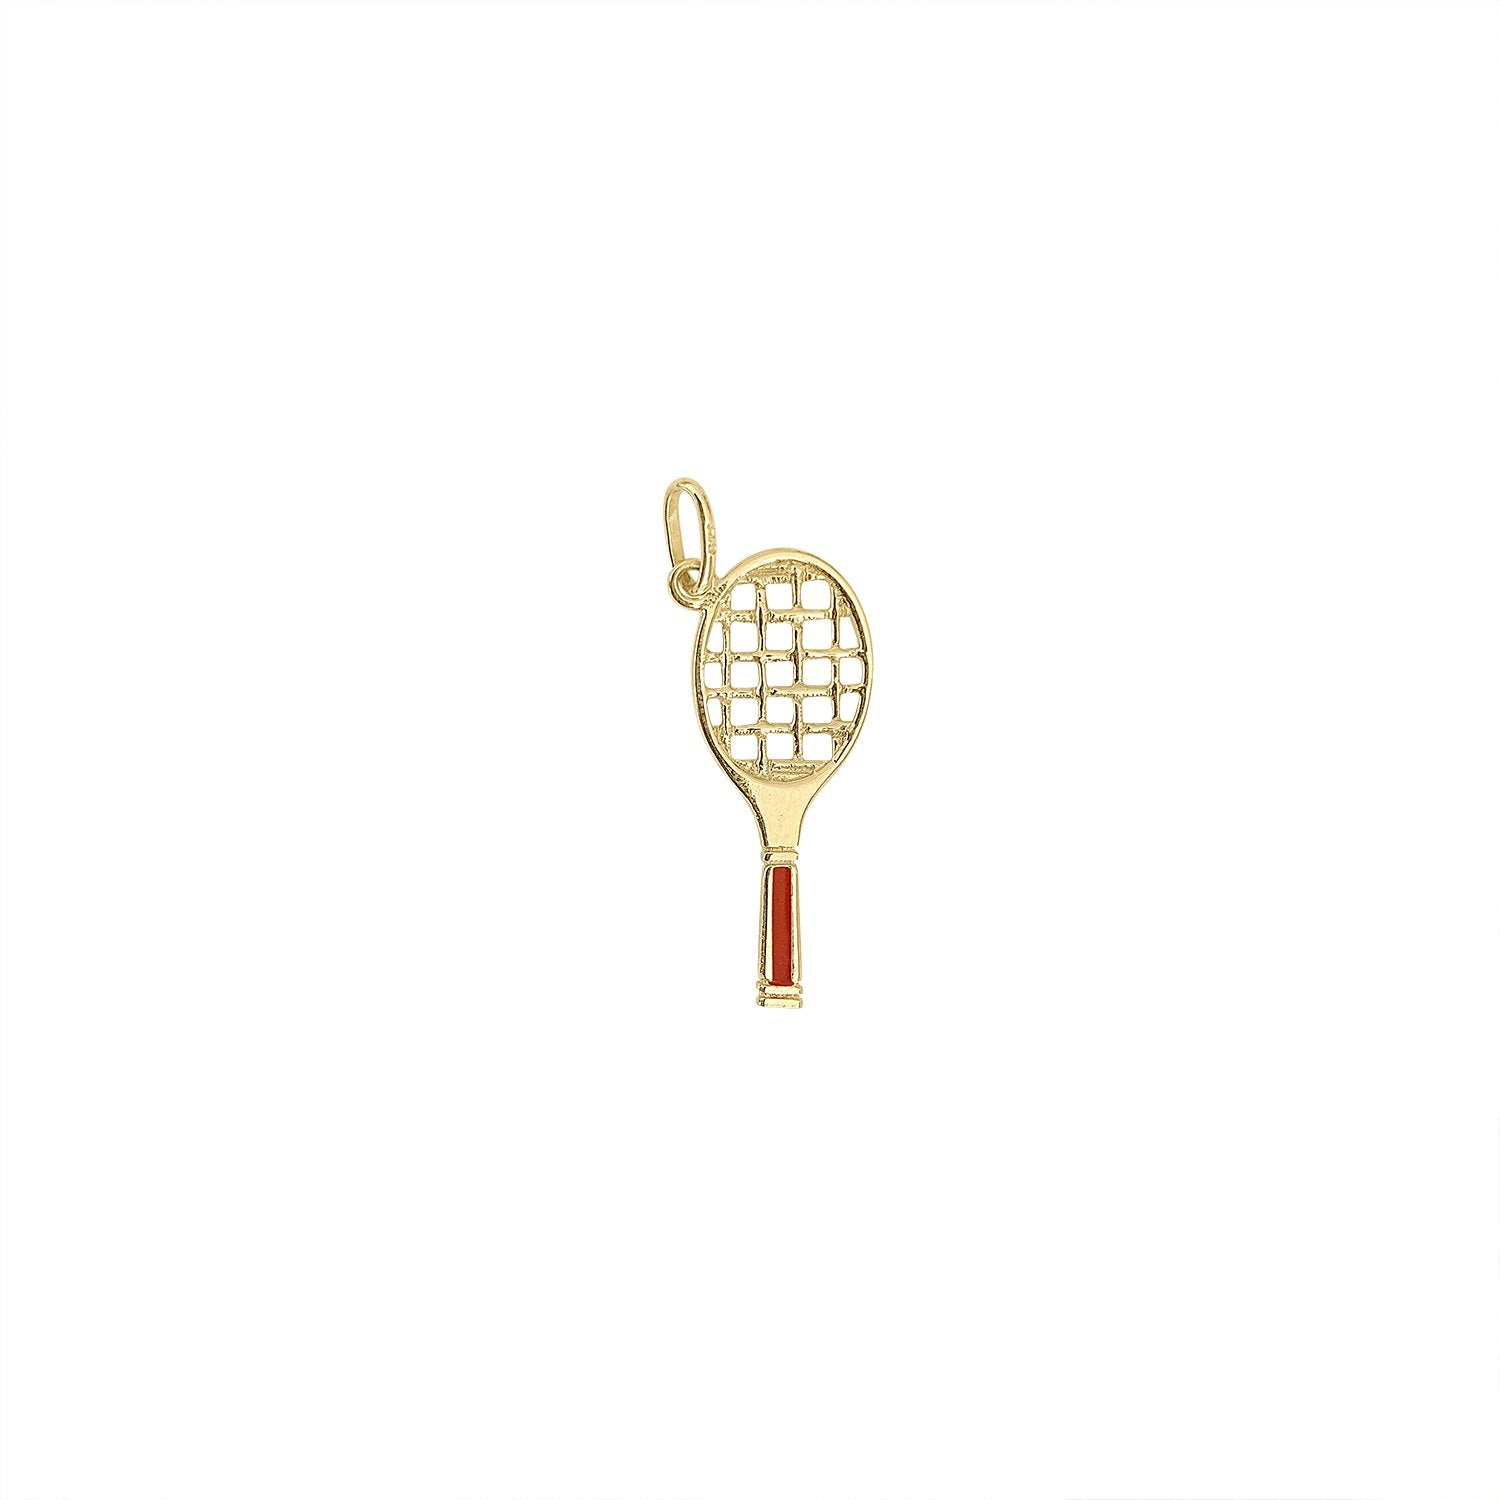 Vintage Tennis Racket Charm by Fewer Finer